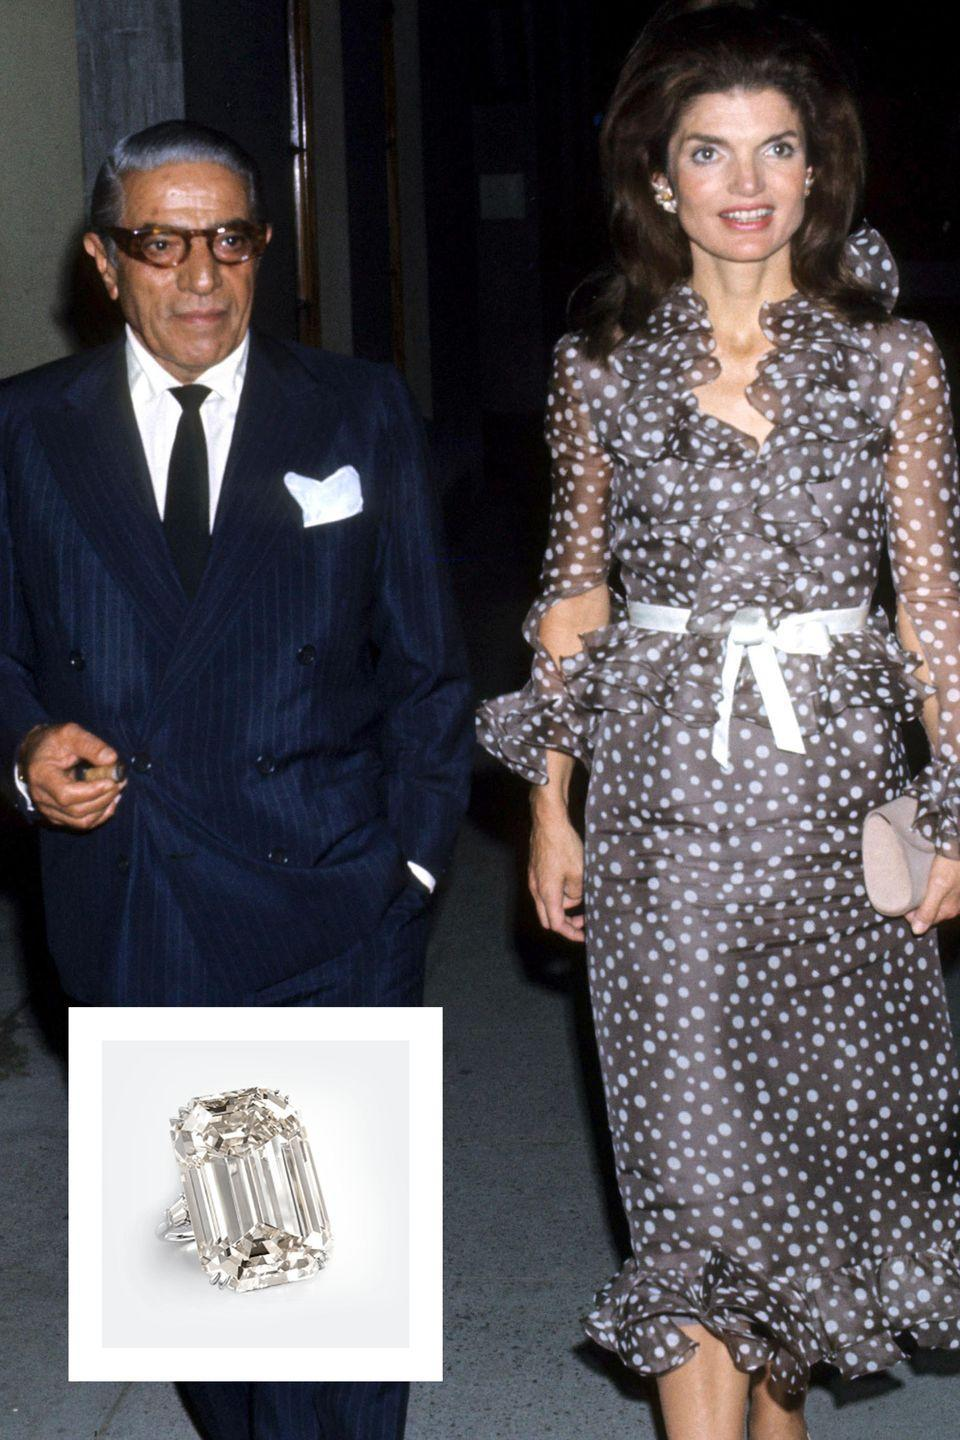 """<p>After the death of her first husband, Jackie married Greek shipping heir Aristotle Onassis in October 1968. Aristotle proposed with a Harry Winston ring featuring the breathtaking <a href=""""http://www.harrywinston.com/en/history-engagement-ring"""" rel=""""nofollow noopener"""" target=""""_blank"""" data-ylk=""""slk:40.42 carat Lesotho Three Diamond."""" class=""""link rapid-noclick-resp"""">40.42 carat Lesotho Three Diamond.</a> Jackie reportedly kept the marquise cut diamond in a bank vault, and it sold at auction for $2.59 million after her death, <a href=""""https://www.brides.com/story/jackie-kennedy-aristotle-onassis-wedding-photos"""" rel=""""nofollow noopener"""" target=""""_blank"""" data-ylk=""""slk:Brides reports."""" class=""""link rapid-noclick-resp""""><em>Brides</em> reports.</a> </p>"""